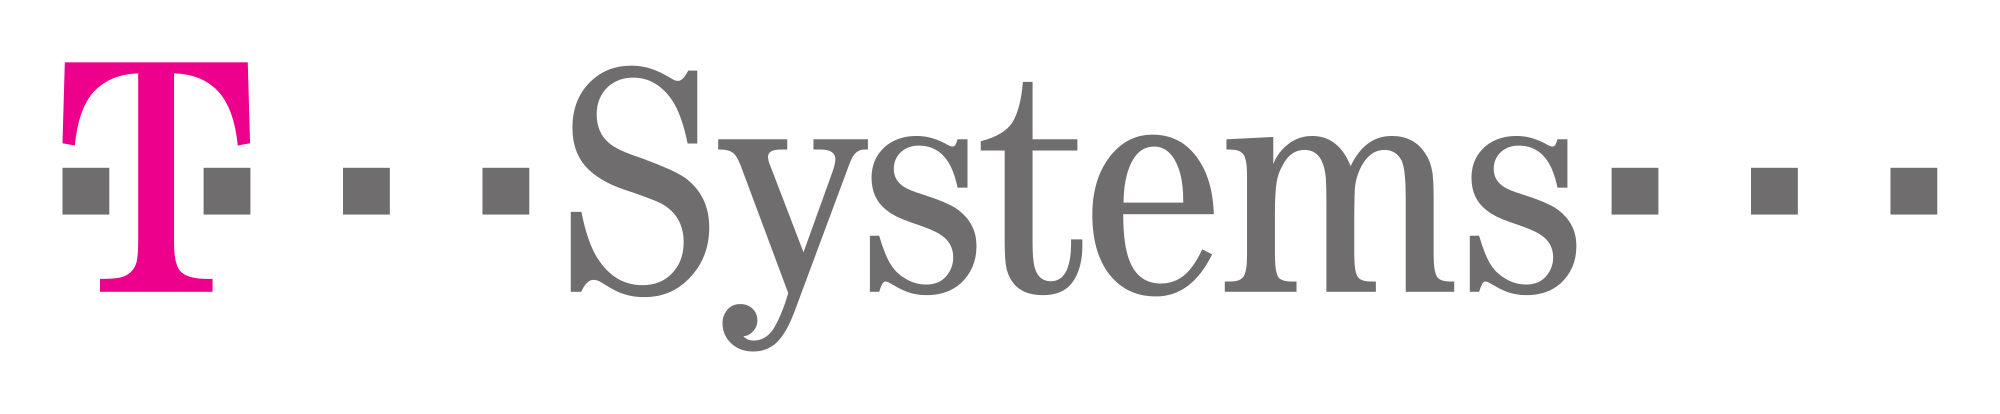 T-Systems_Logo.png